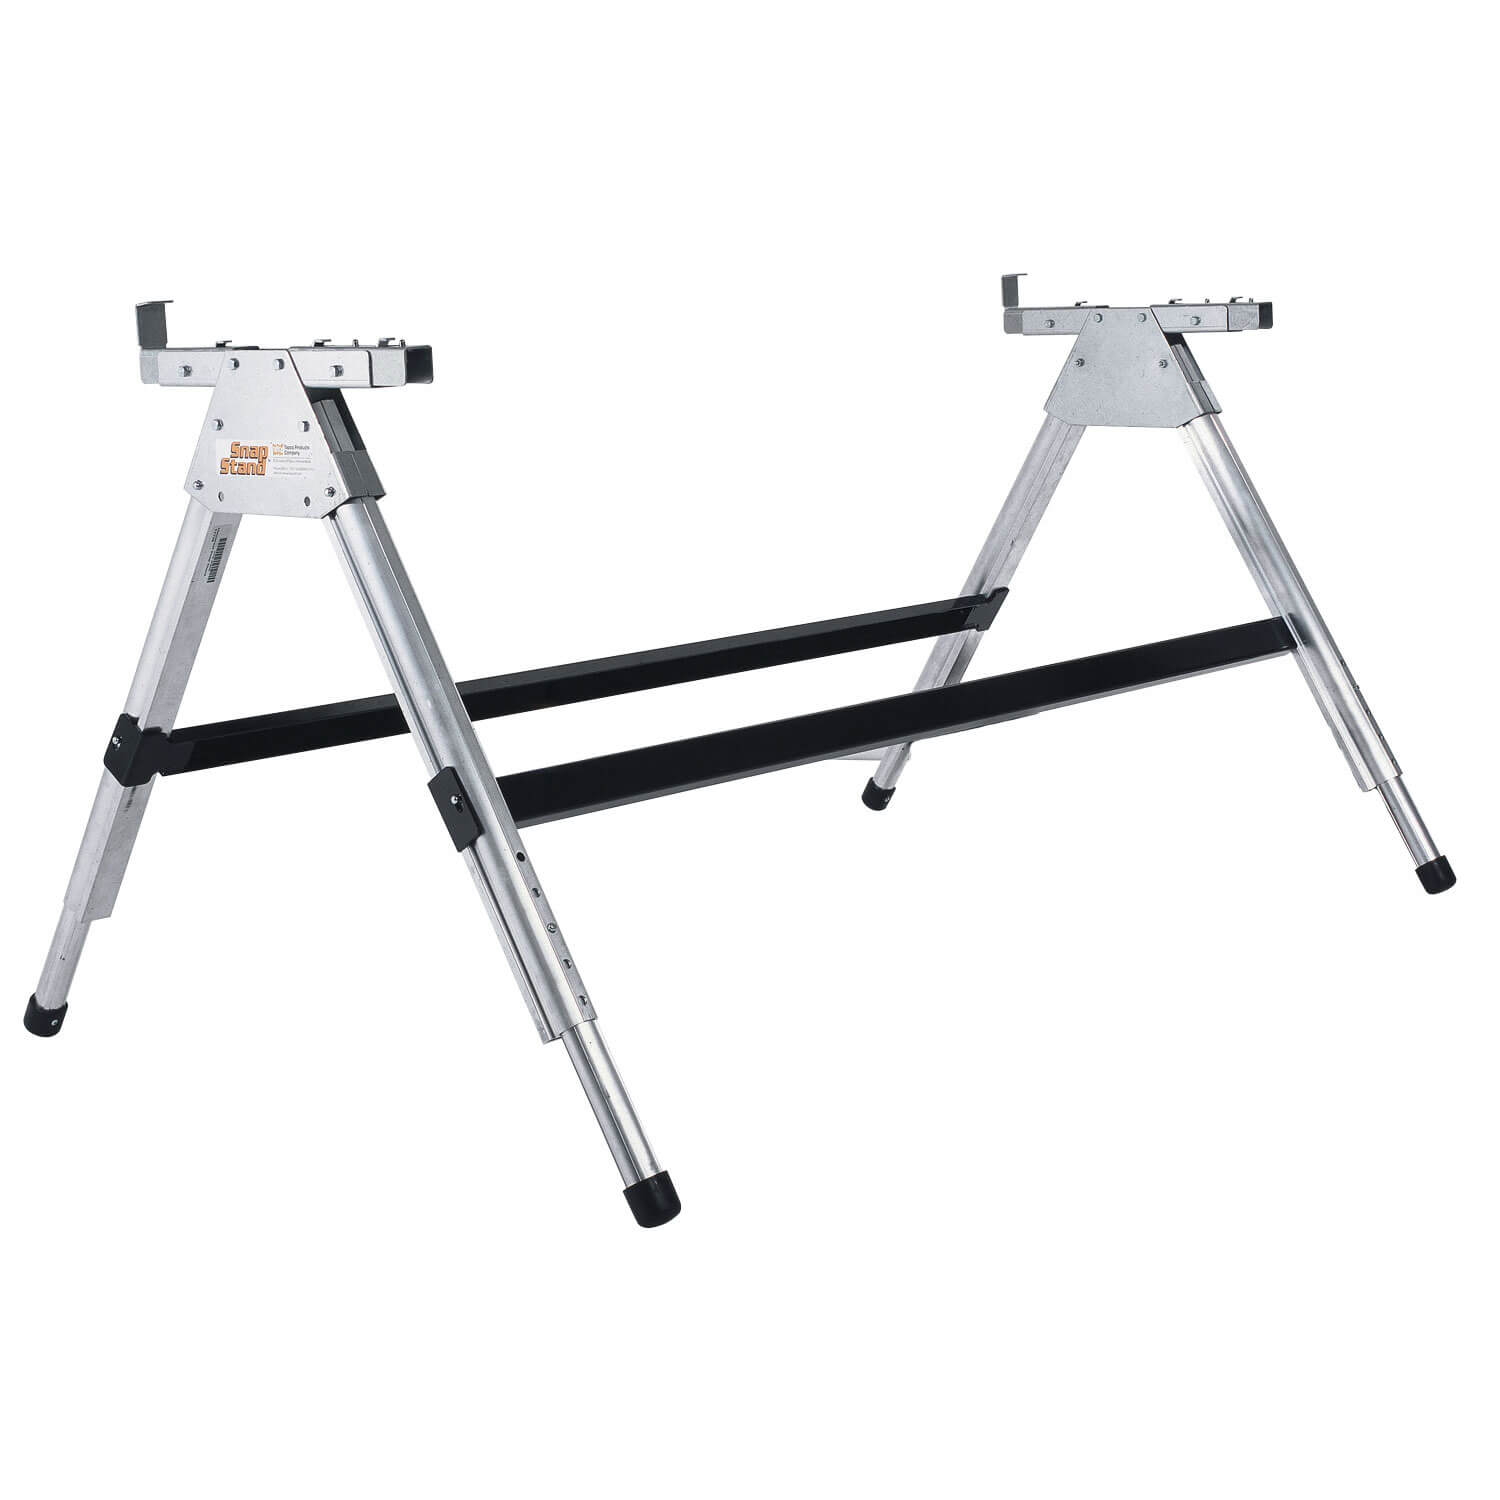 Tapco Snap Stand for 6' Pro Series Brakes